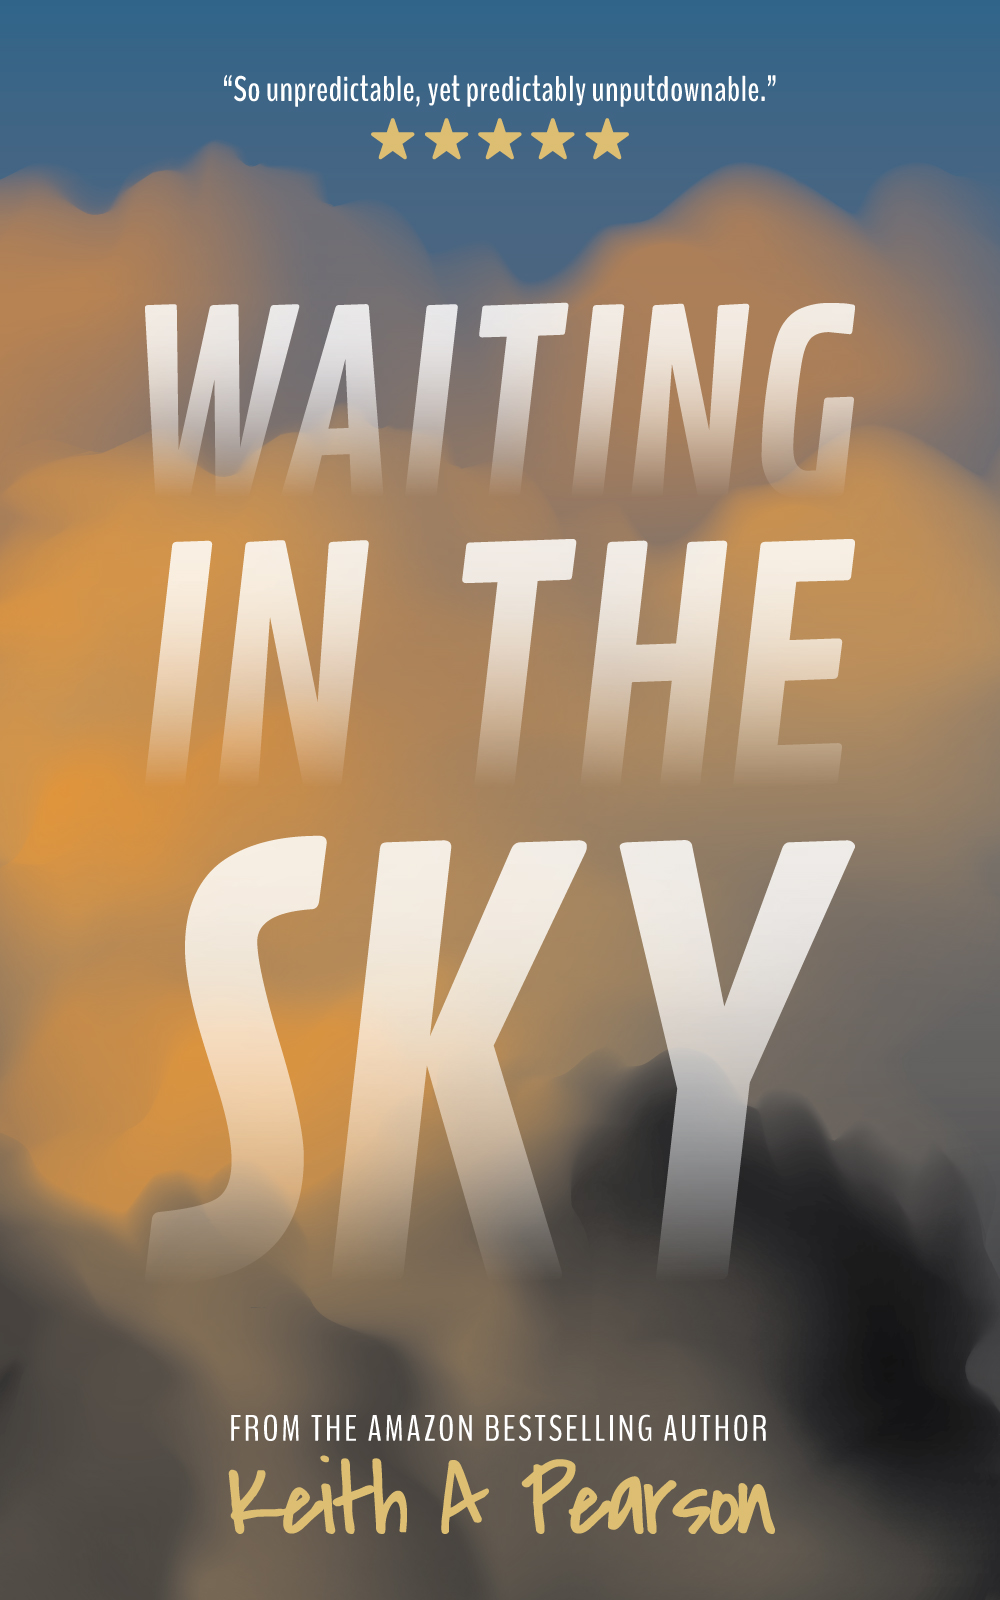 Waiting in The Sky by Keith A Pearson